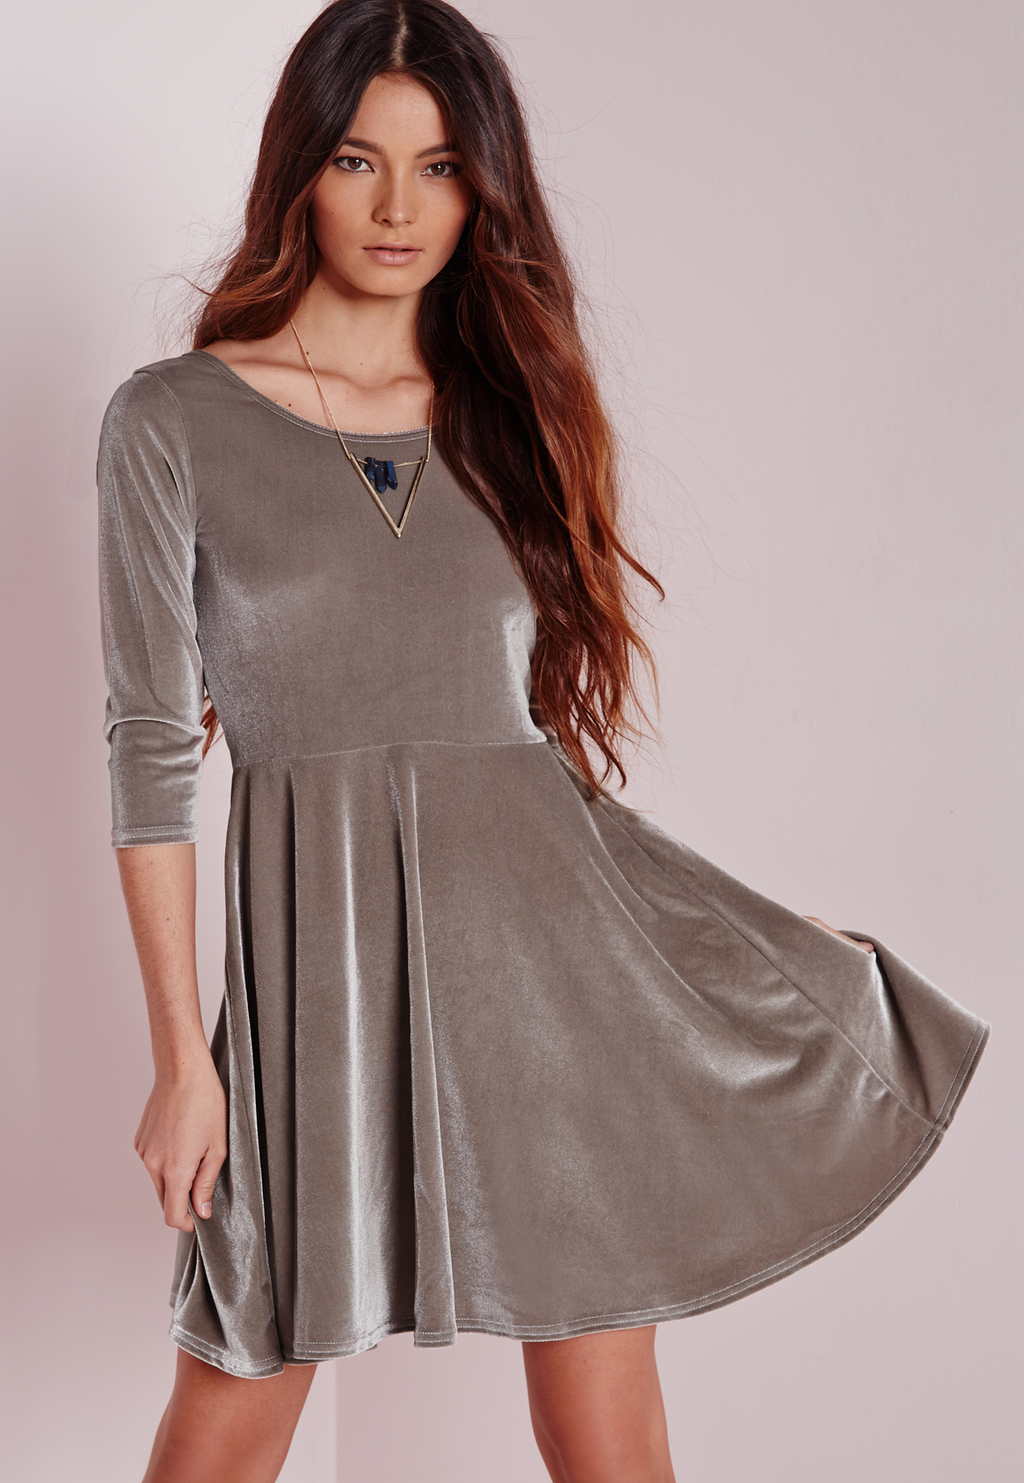 3/4 Sleeve Velvet Skater Dress Grey, Grey - neckline: round neck; pattern: plain; predominant colour: mid grey; occasions: evening, occasion, creative work; length: just above the knee; fit: fitted at waist & bust; style: fit & flare; fibres: polyester/polyamide - mix; sleeve length: 3/4 length; sleeve style: standard; pattern type: fabric; texture group: velvet/fabrics with pile; season: a/w 2015; wardrobe: highlight